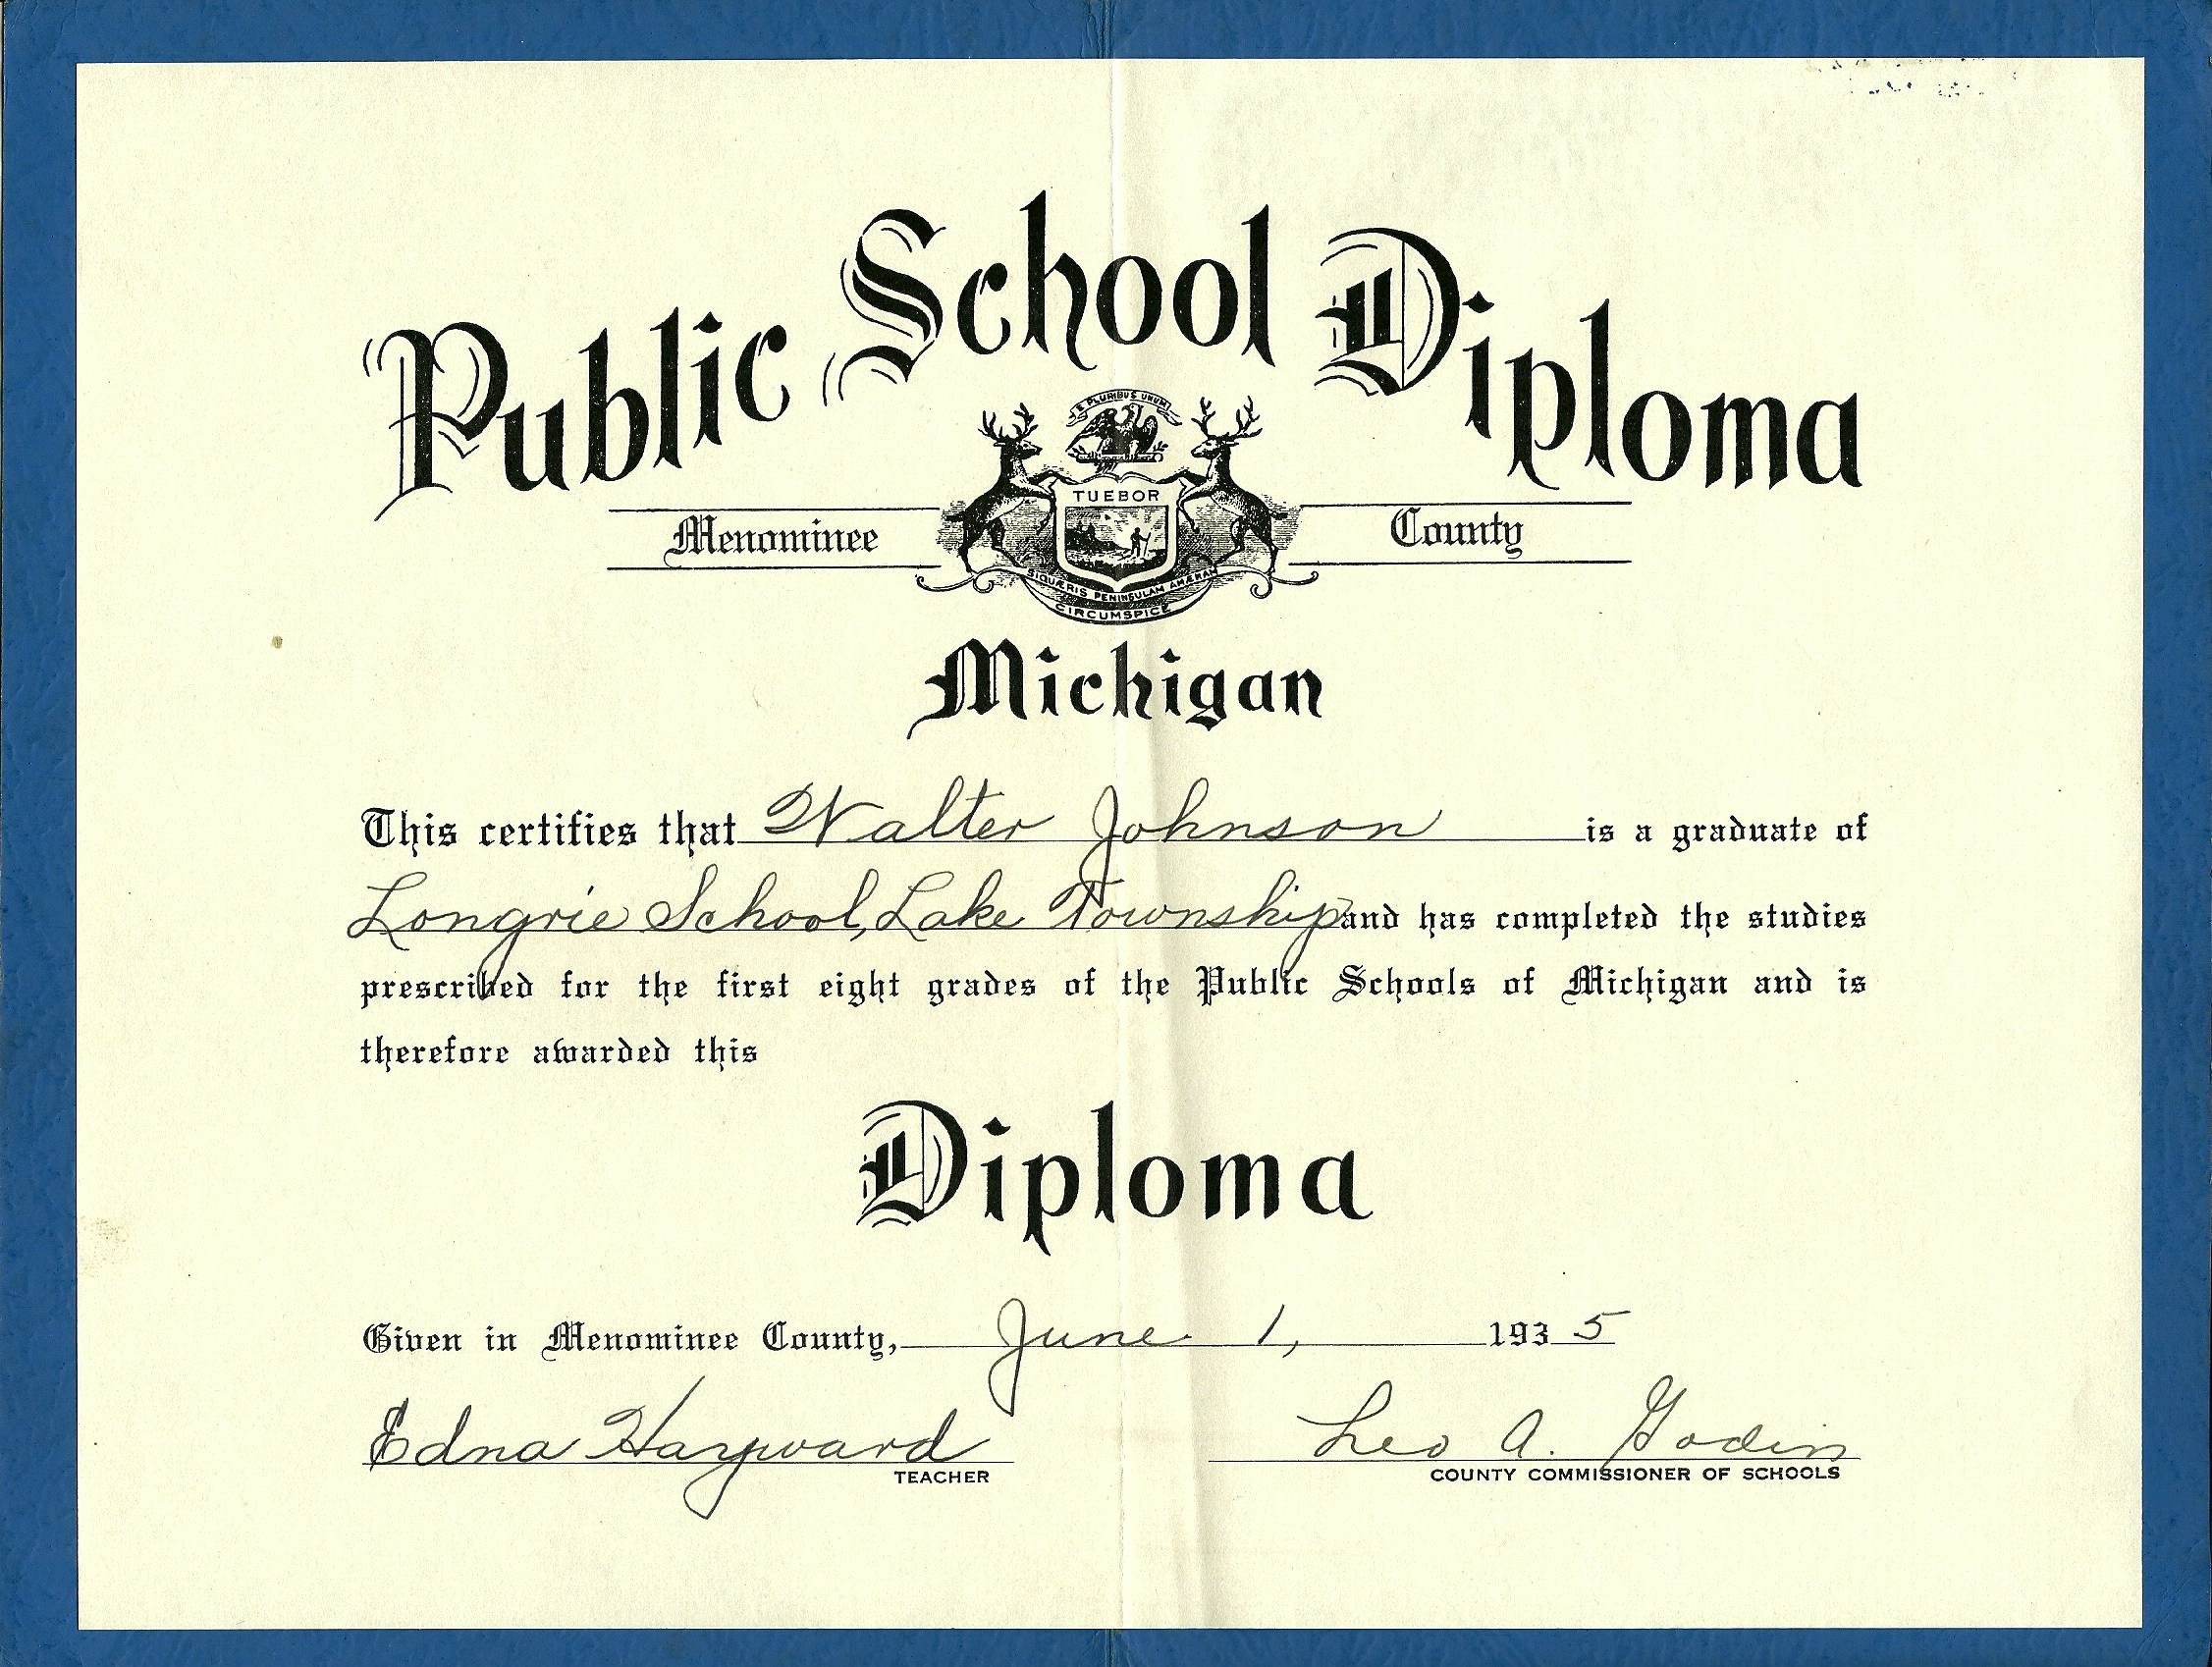 6th grade graduation certificate template - longrie one room schoolhouse menominee county michigan